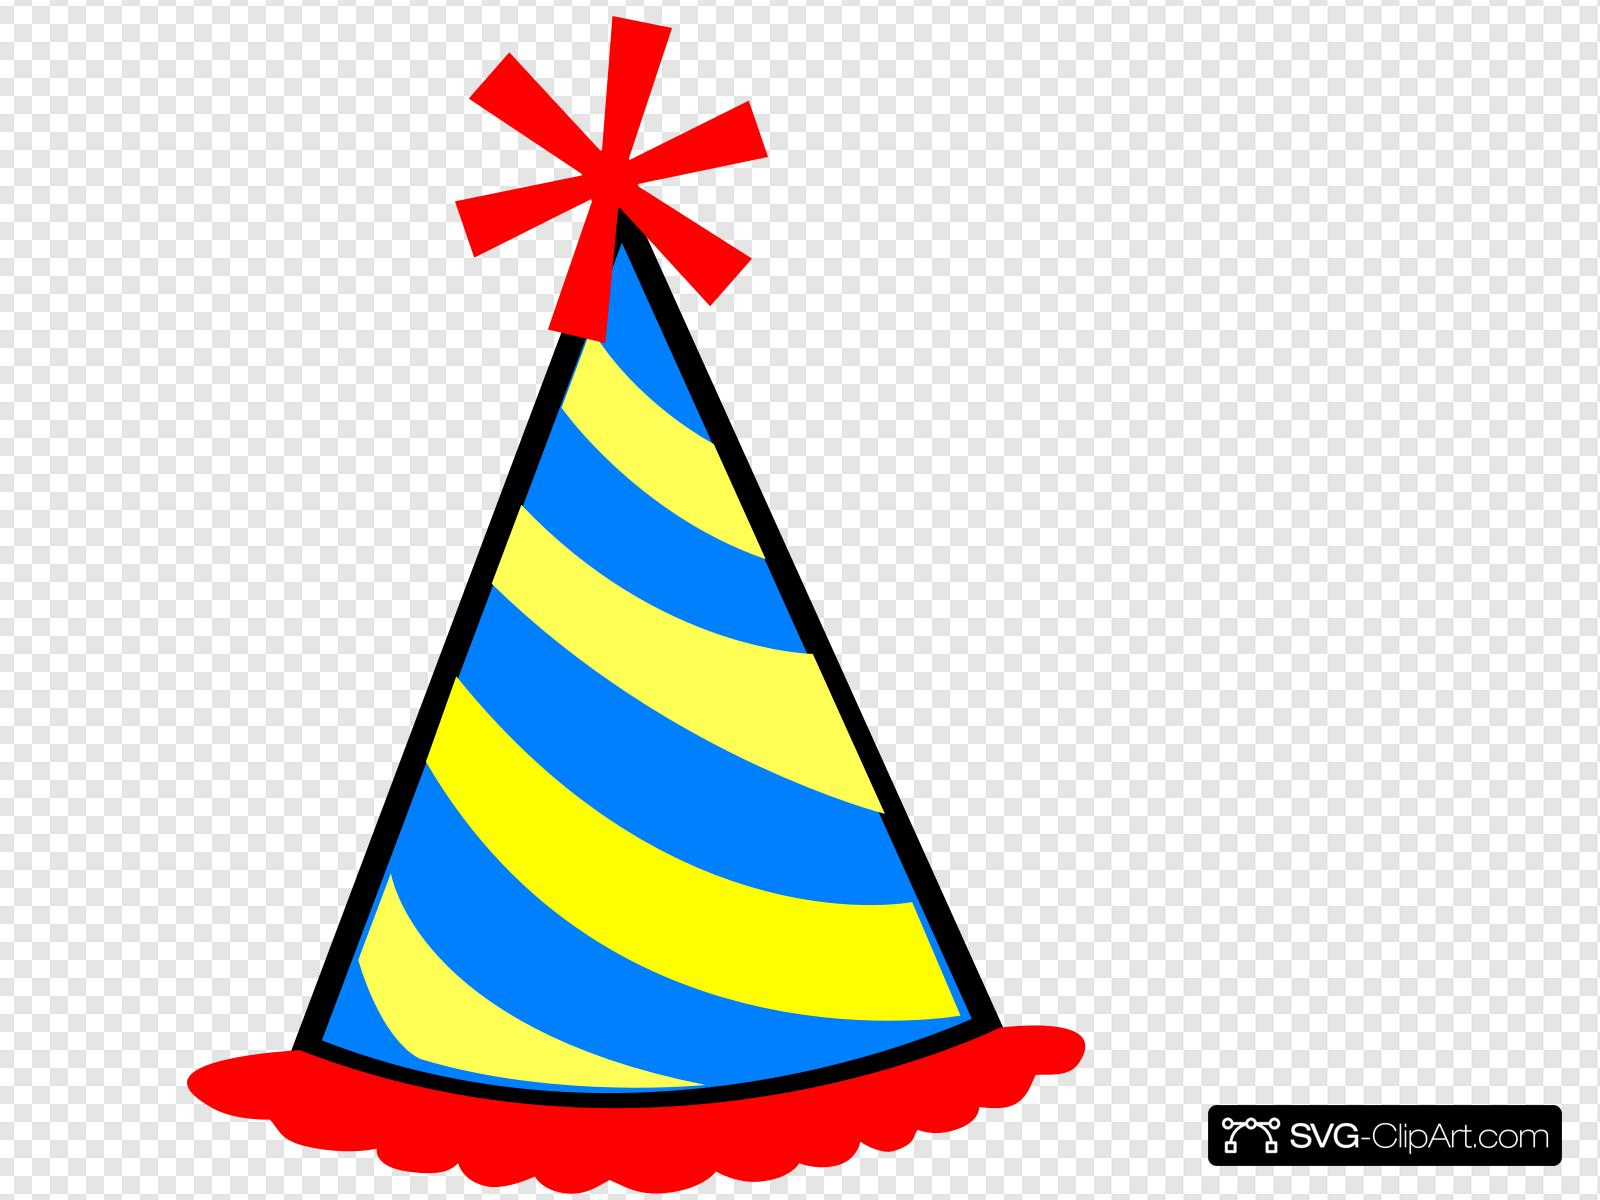 Party Hat Red Blue Yellow Clip art, Icon and SVG.